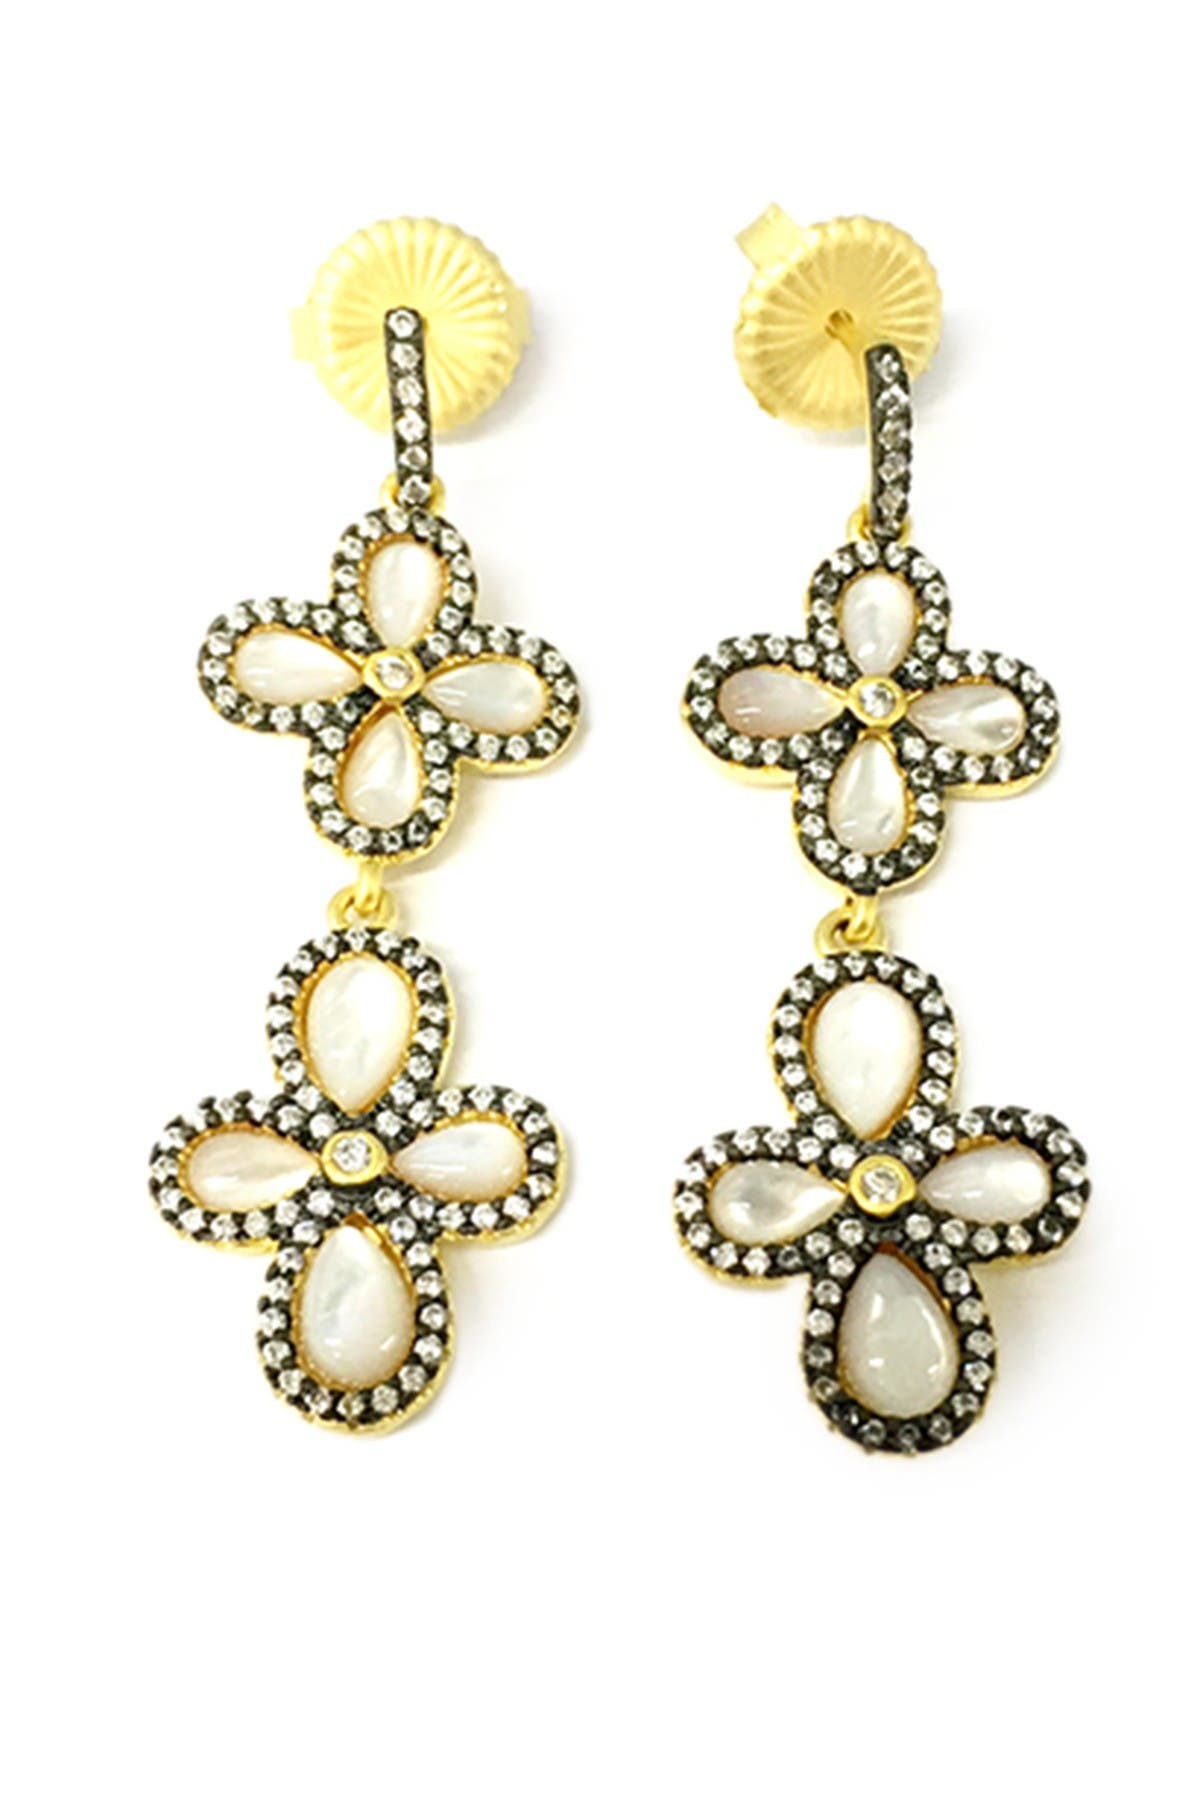 Image of Freida Rothman Sterling Silver Double Pave CZ Clover Drop Earring